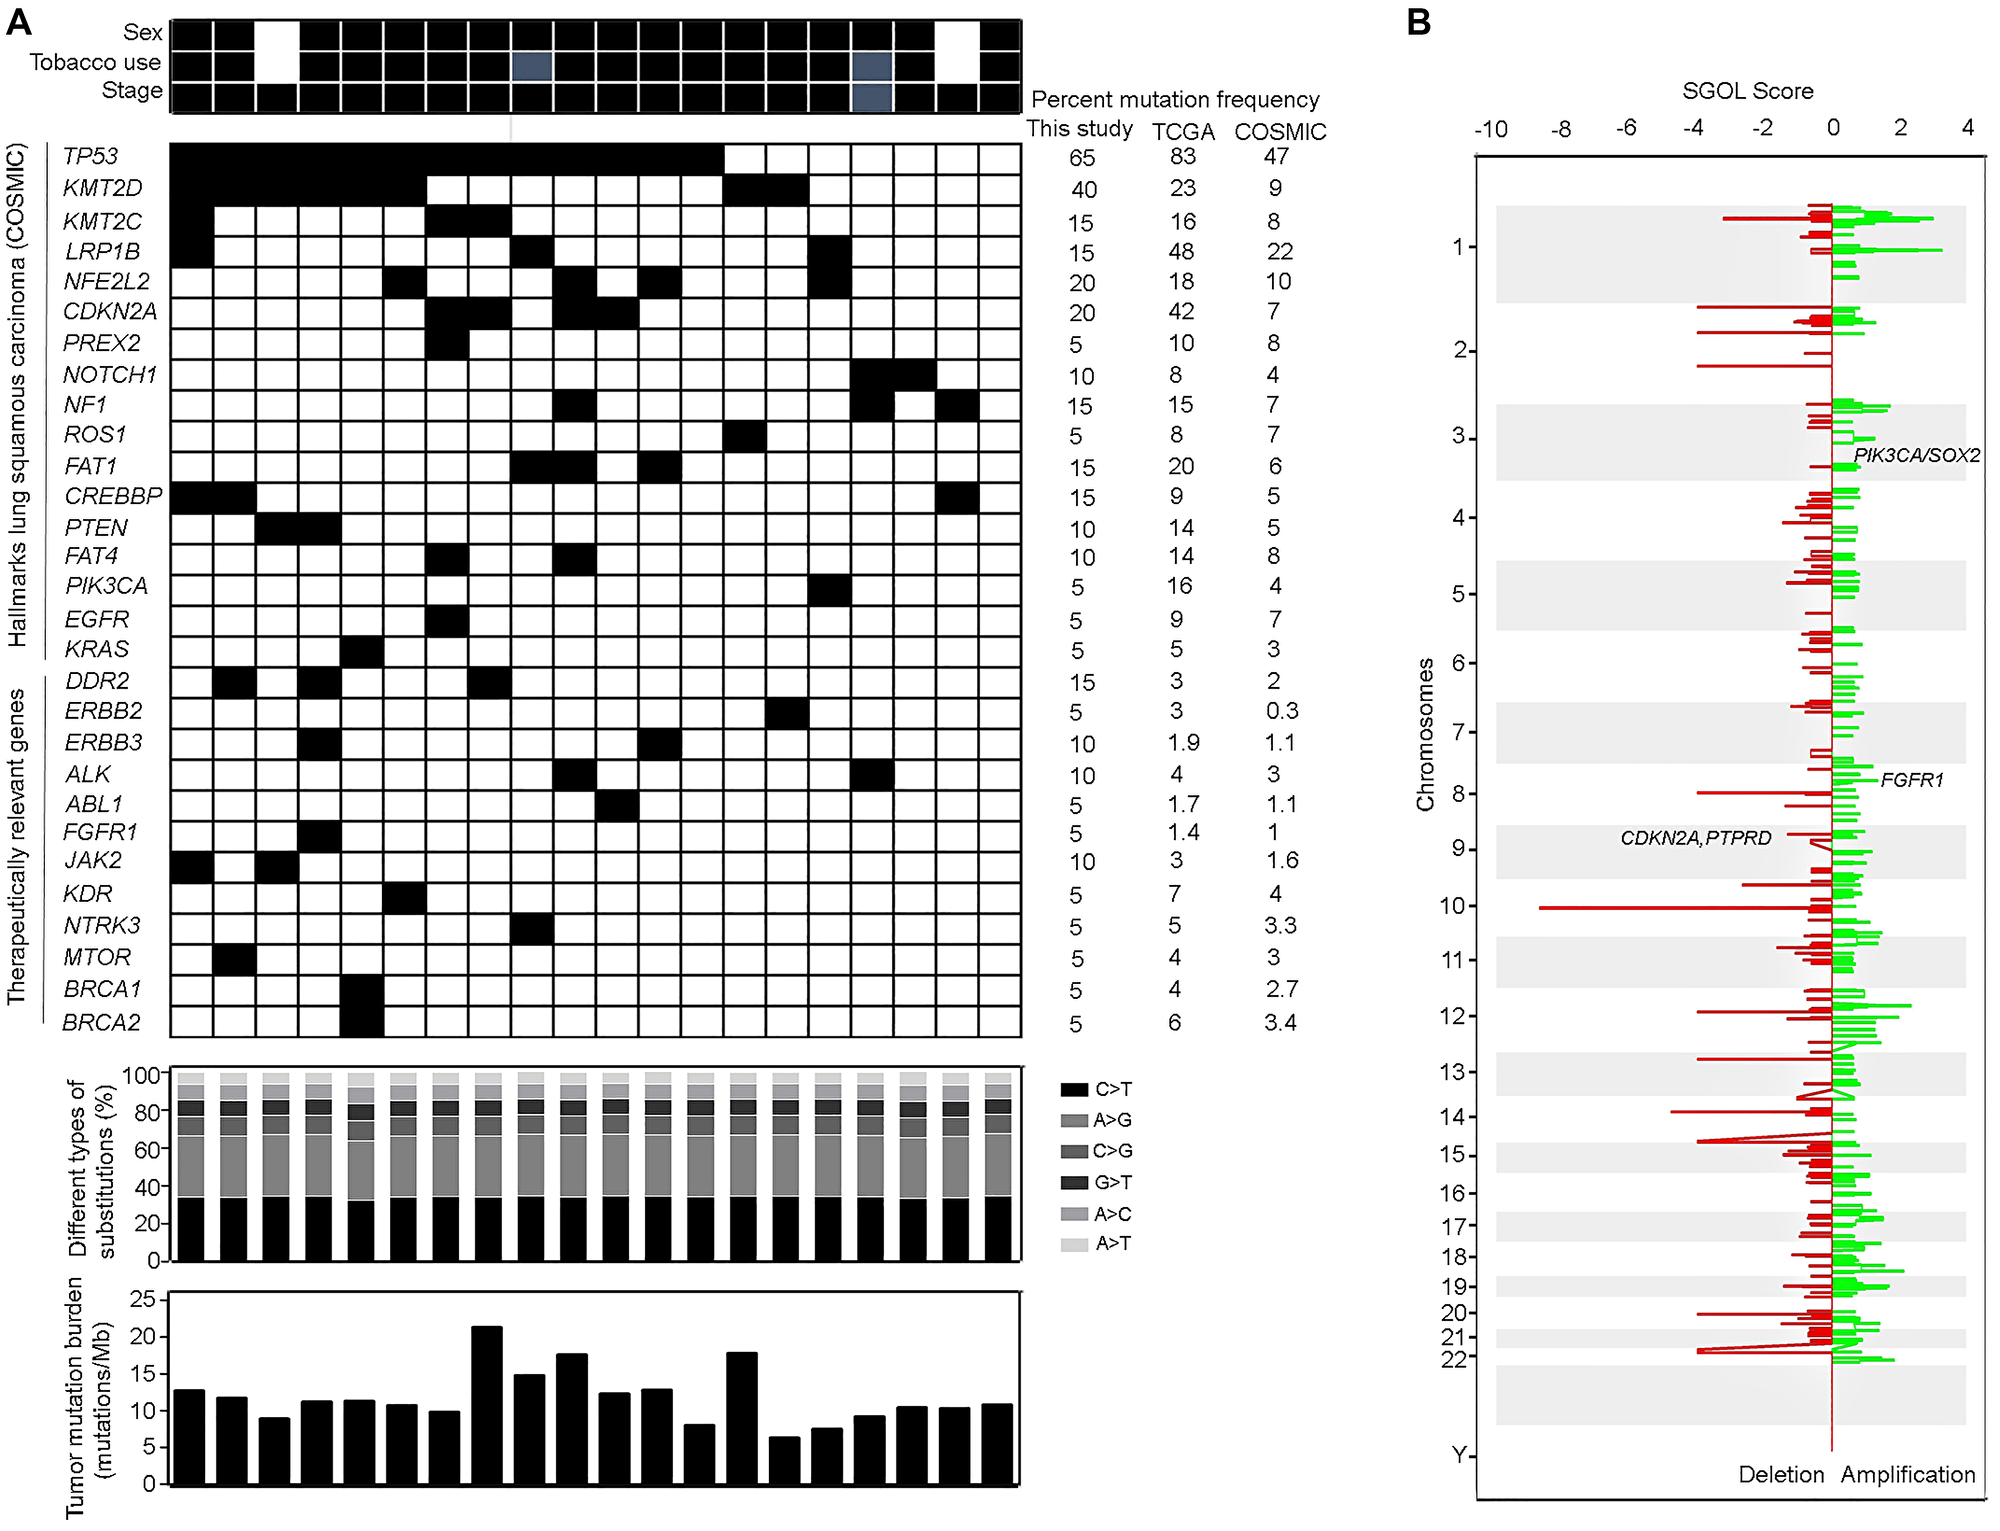 Somatic mutations and copy number variations observed in lung squamous carcinoma patients.